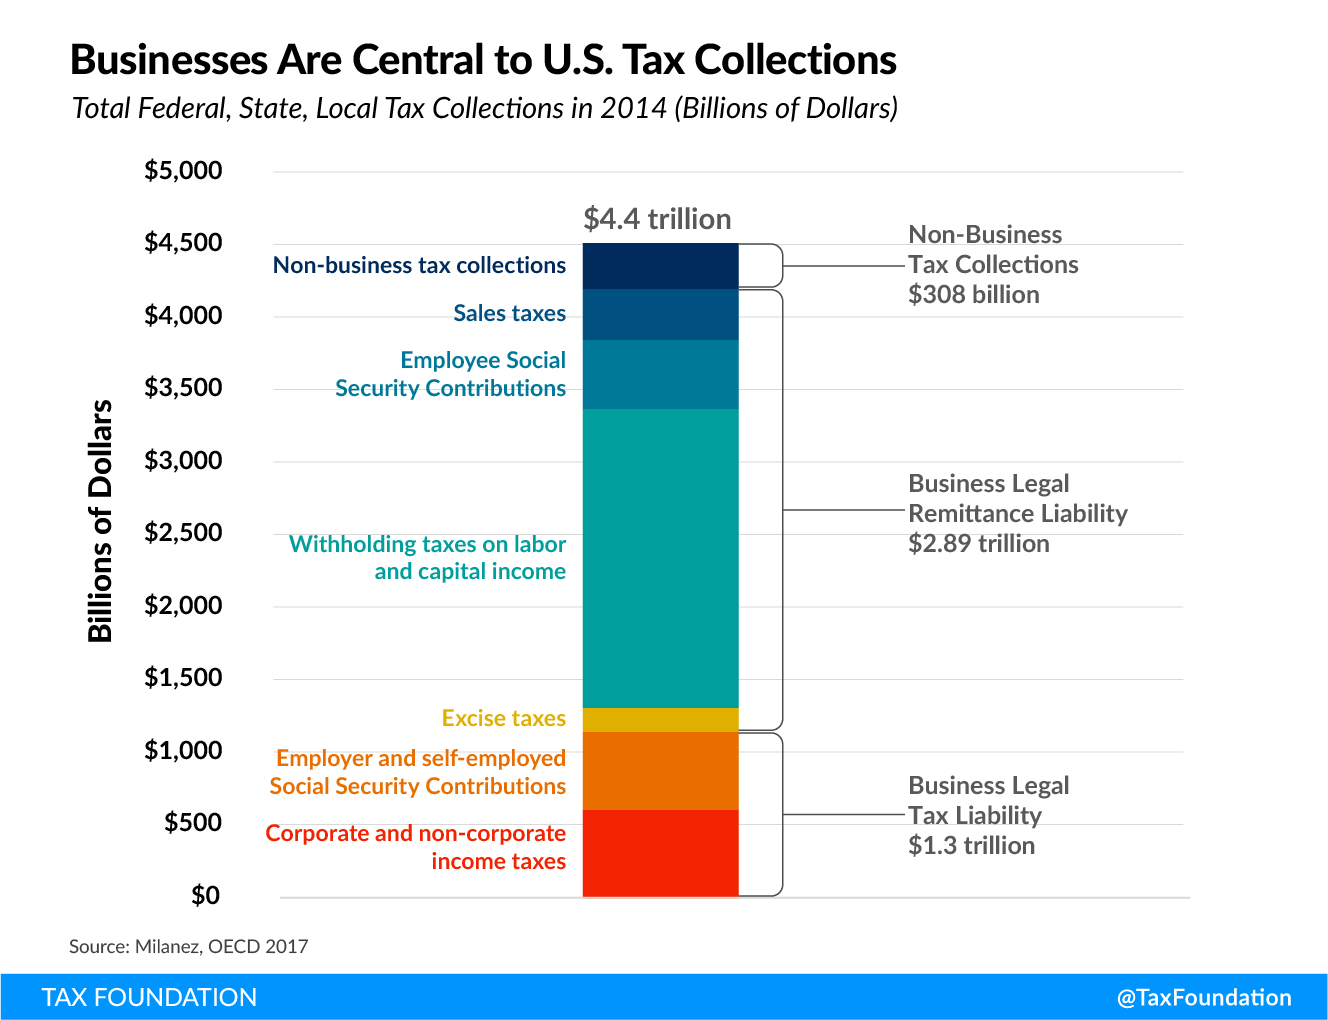 US tax system business dependent, US business tax revenue Tax Fairness, Economic Growth, and Funding Government Investments (Fairer Tax System)